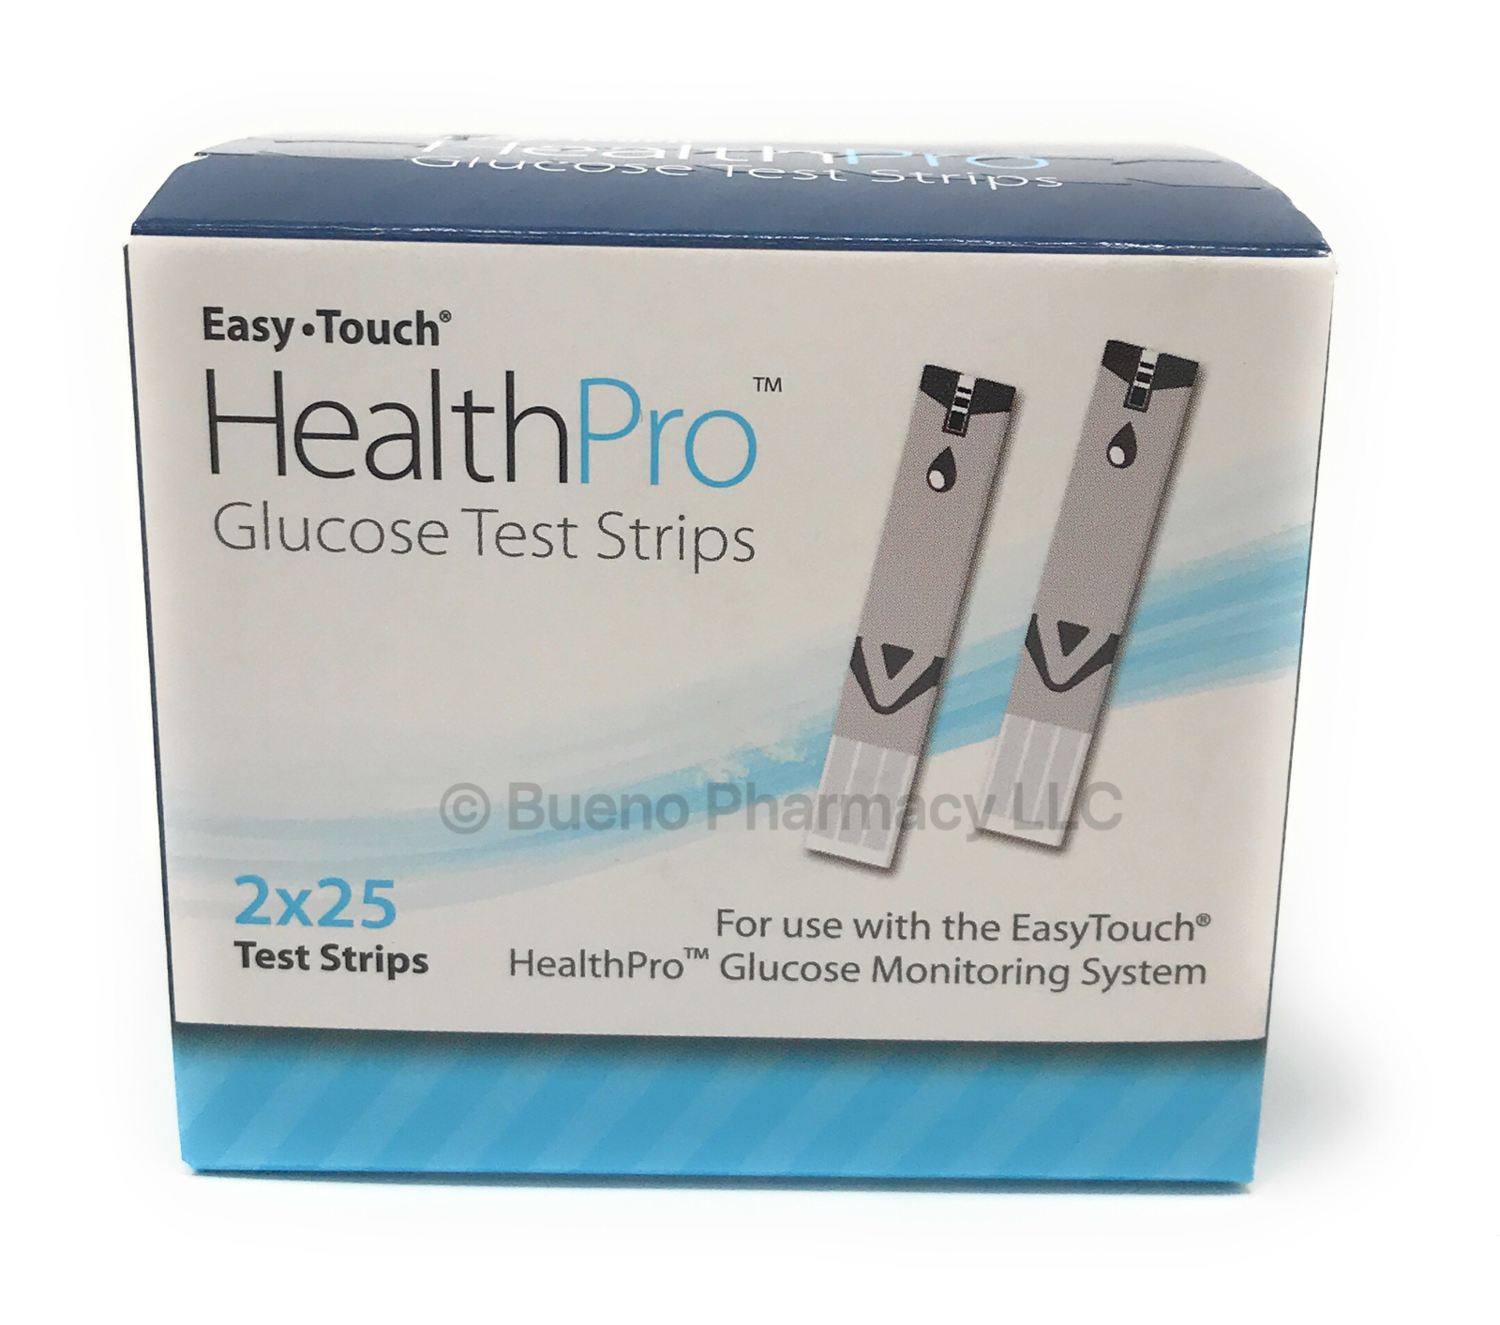 Easy Touch HealthPro Glucose Test Strips